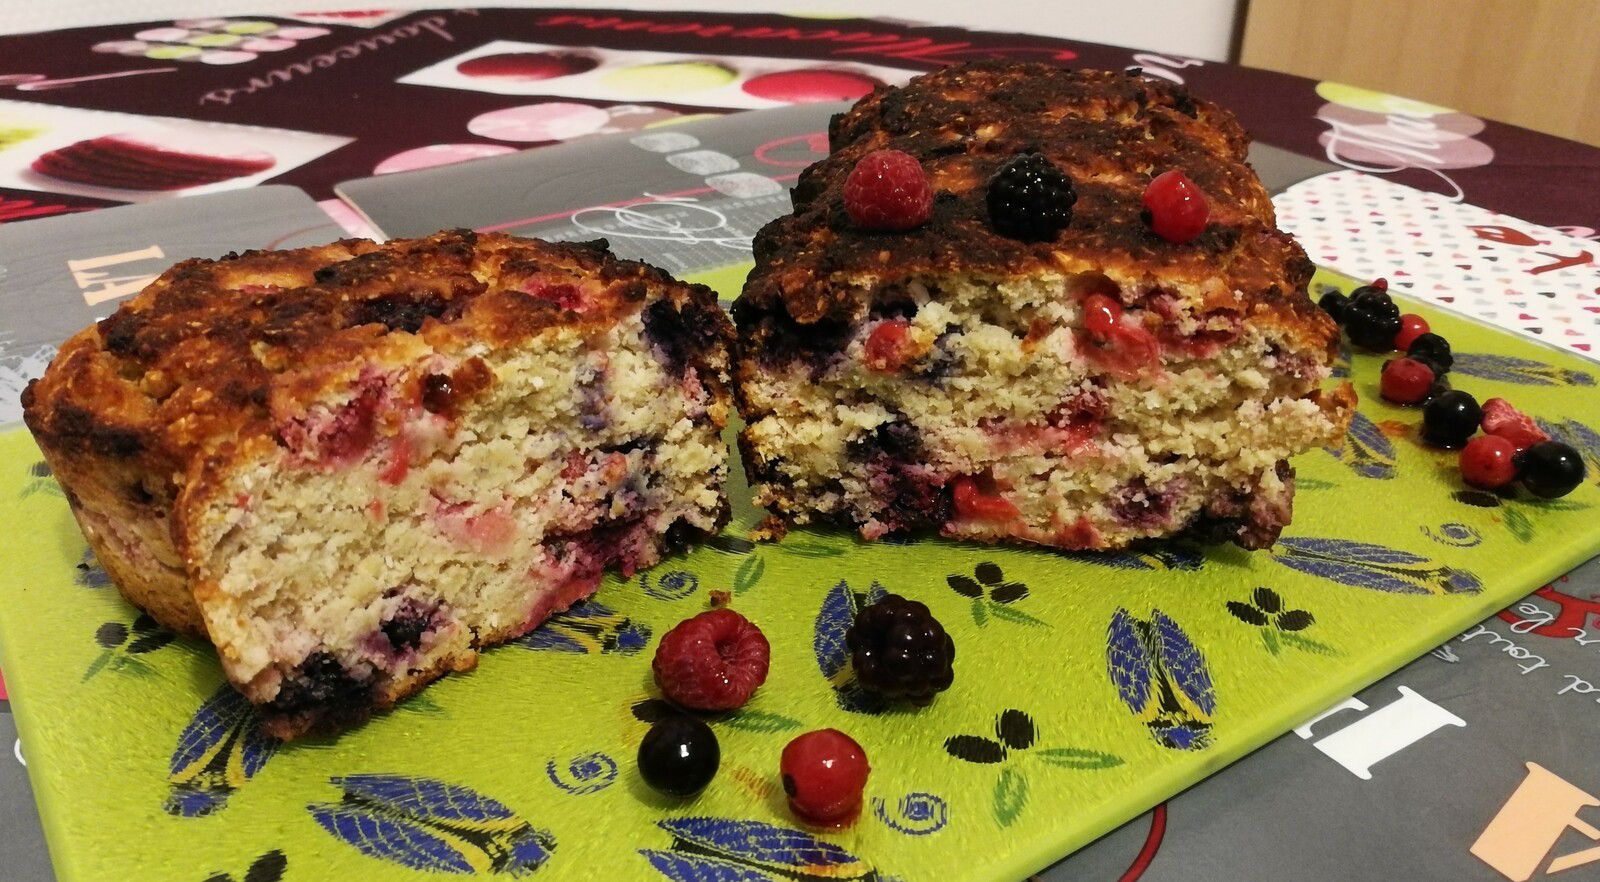 Cake coco, avoine & fruits rouges